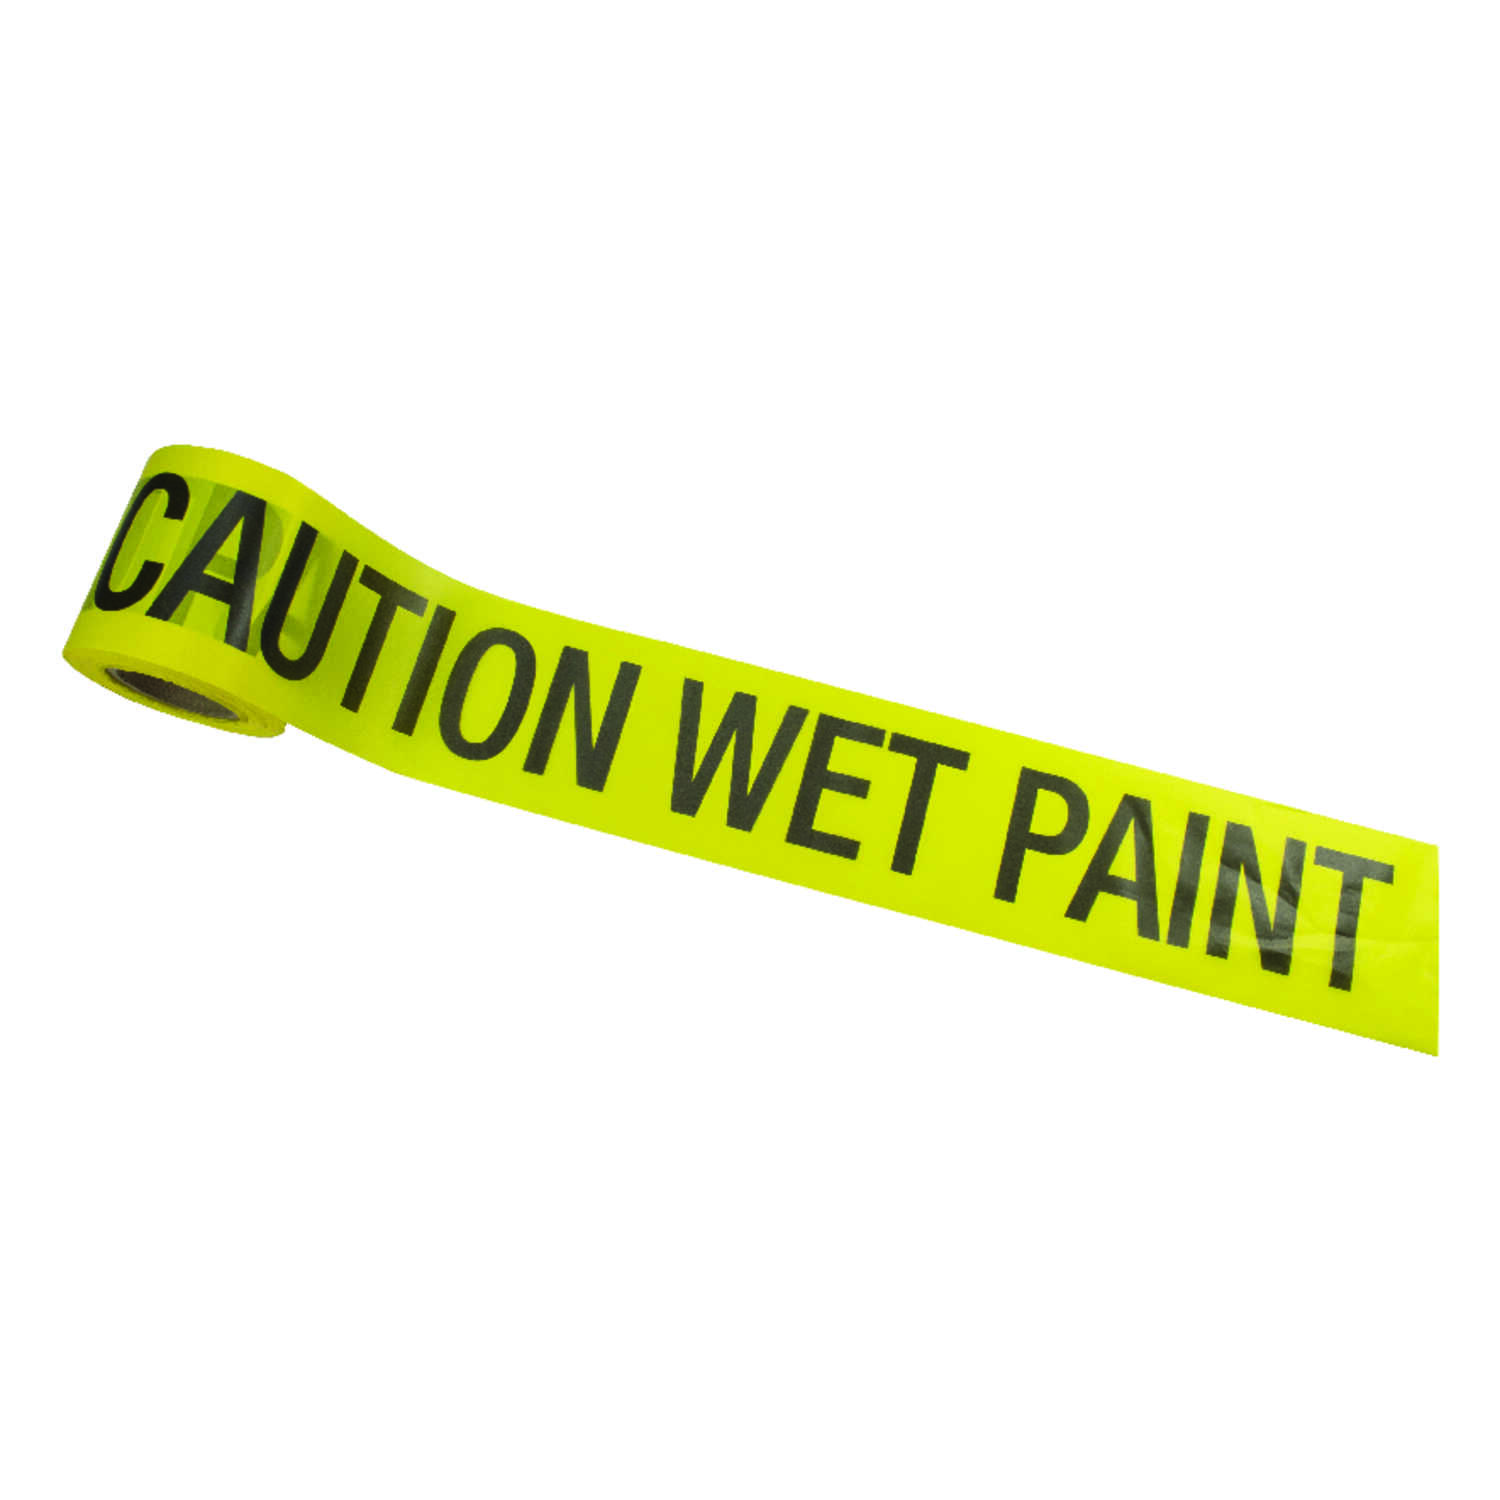 C.H. Hanson  200 ft. L x 3 in. W Plastic  Caution Wet Paint  Barricade Tape